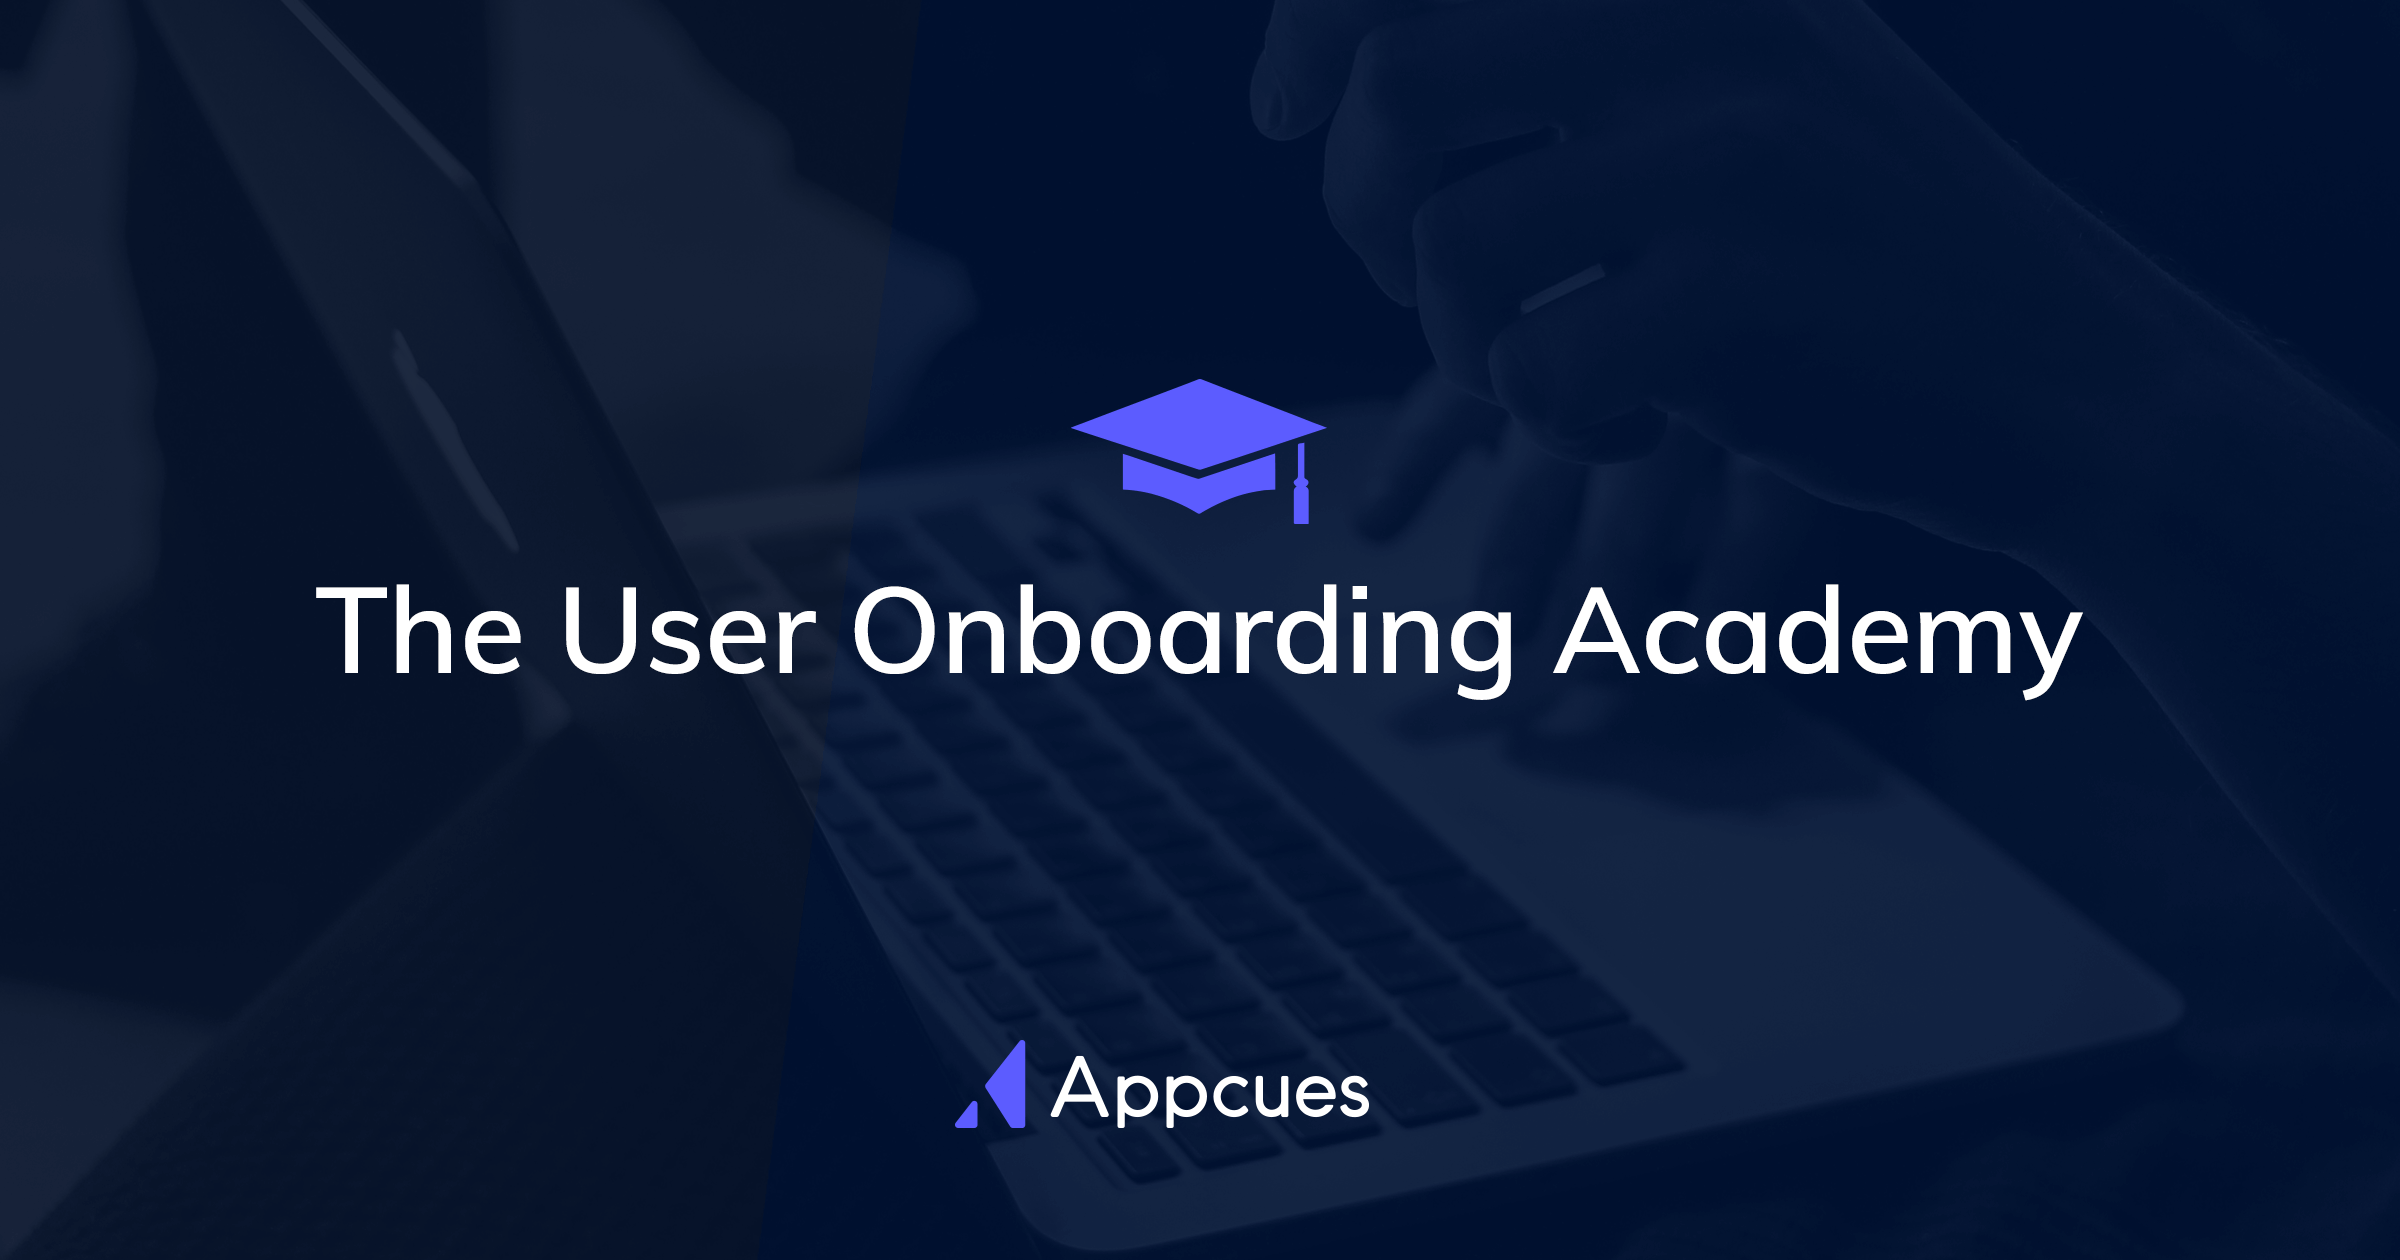 The User Onboarding Academy